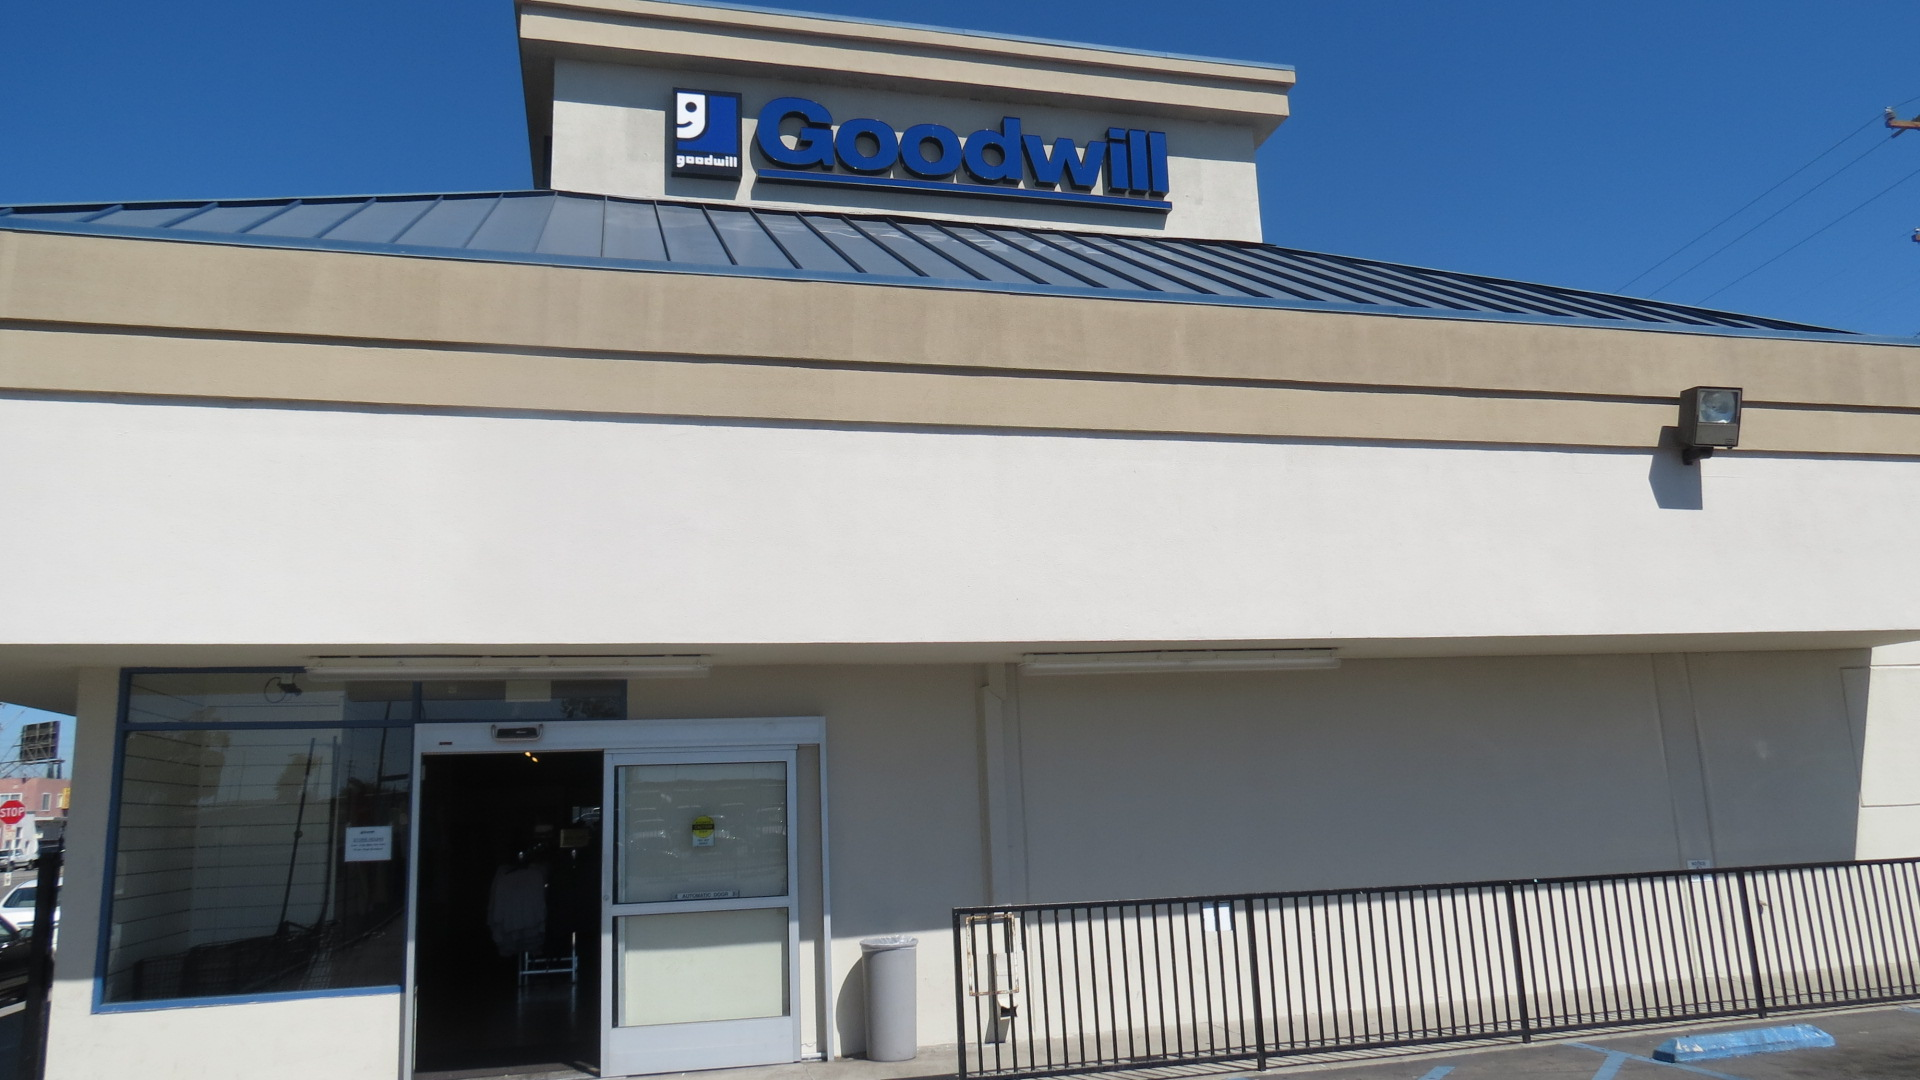 Long Beach Goodwill Retail Store & Donation Center